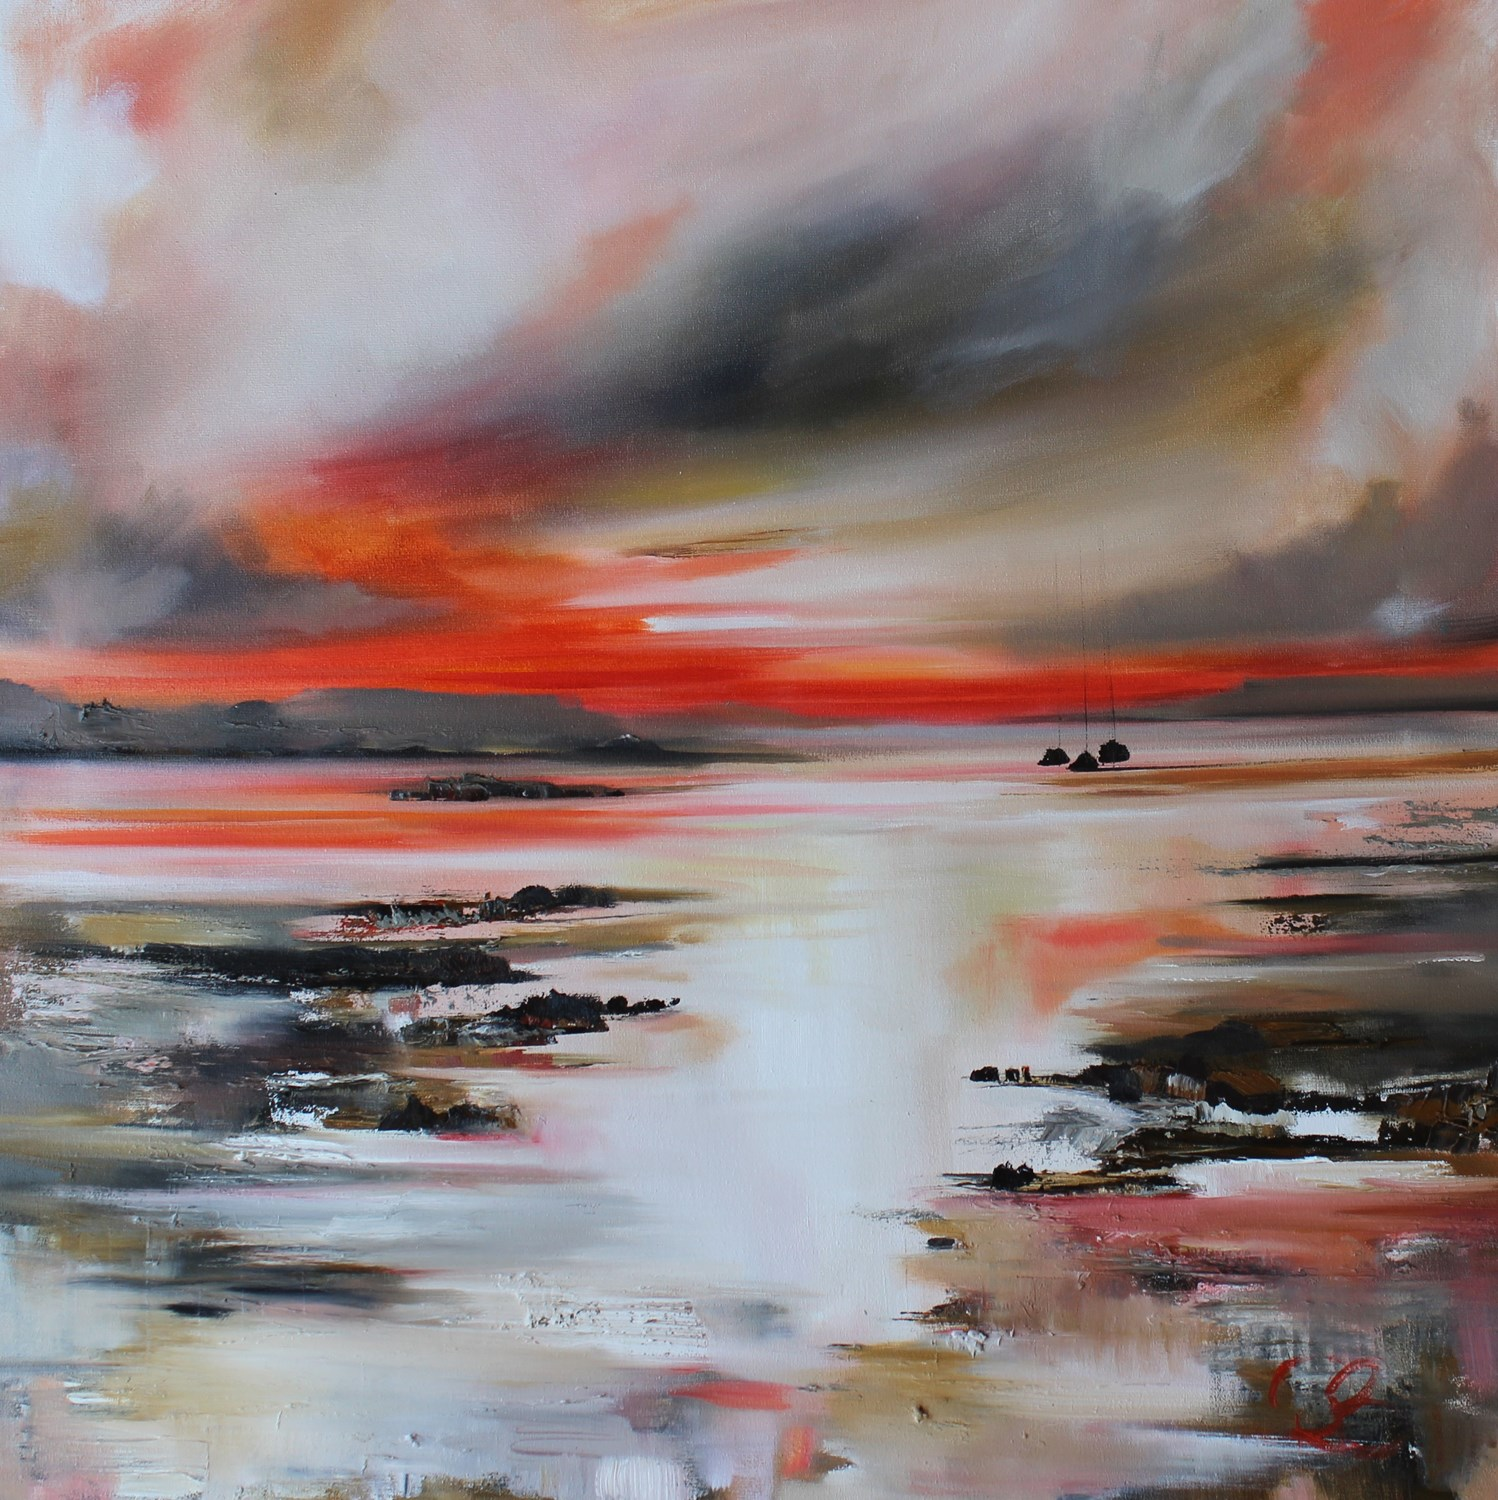 'Sudden Sunset' by artist Rosanne Barr